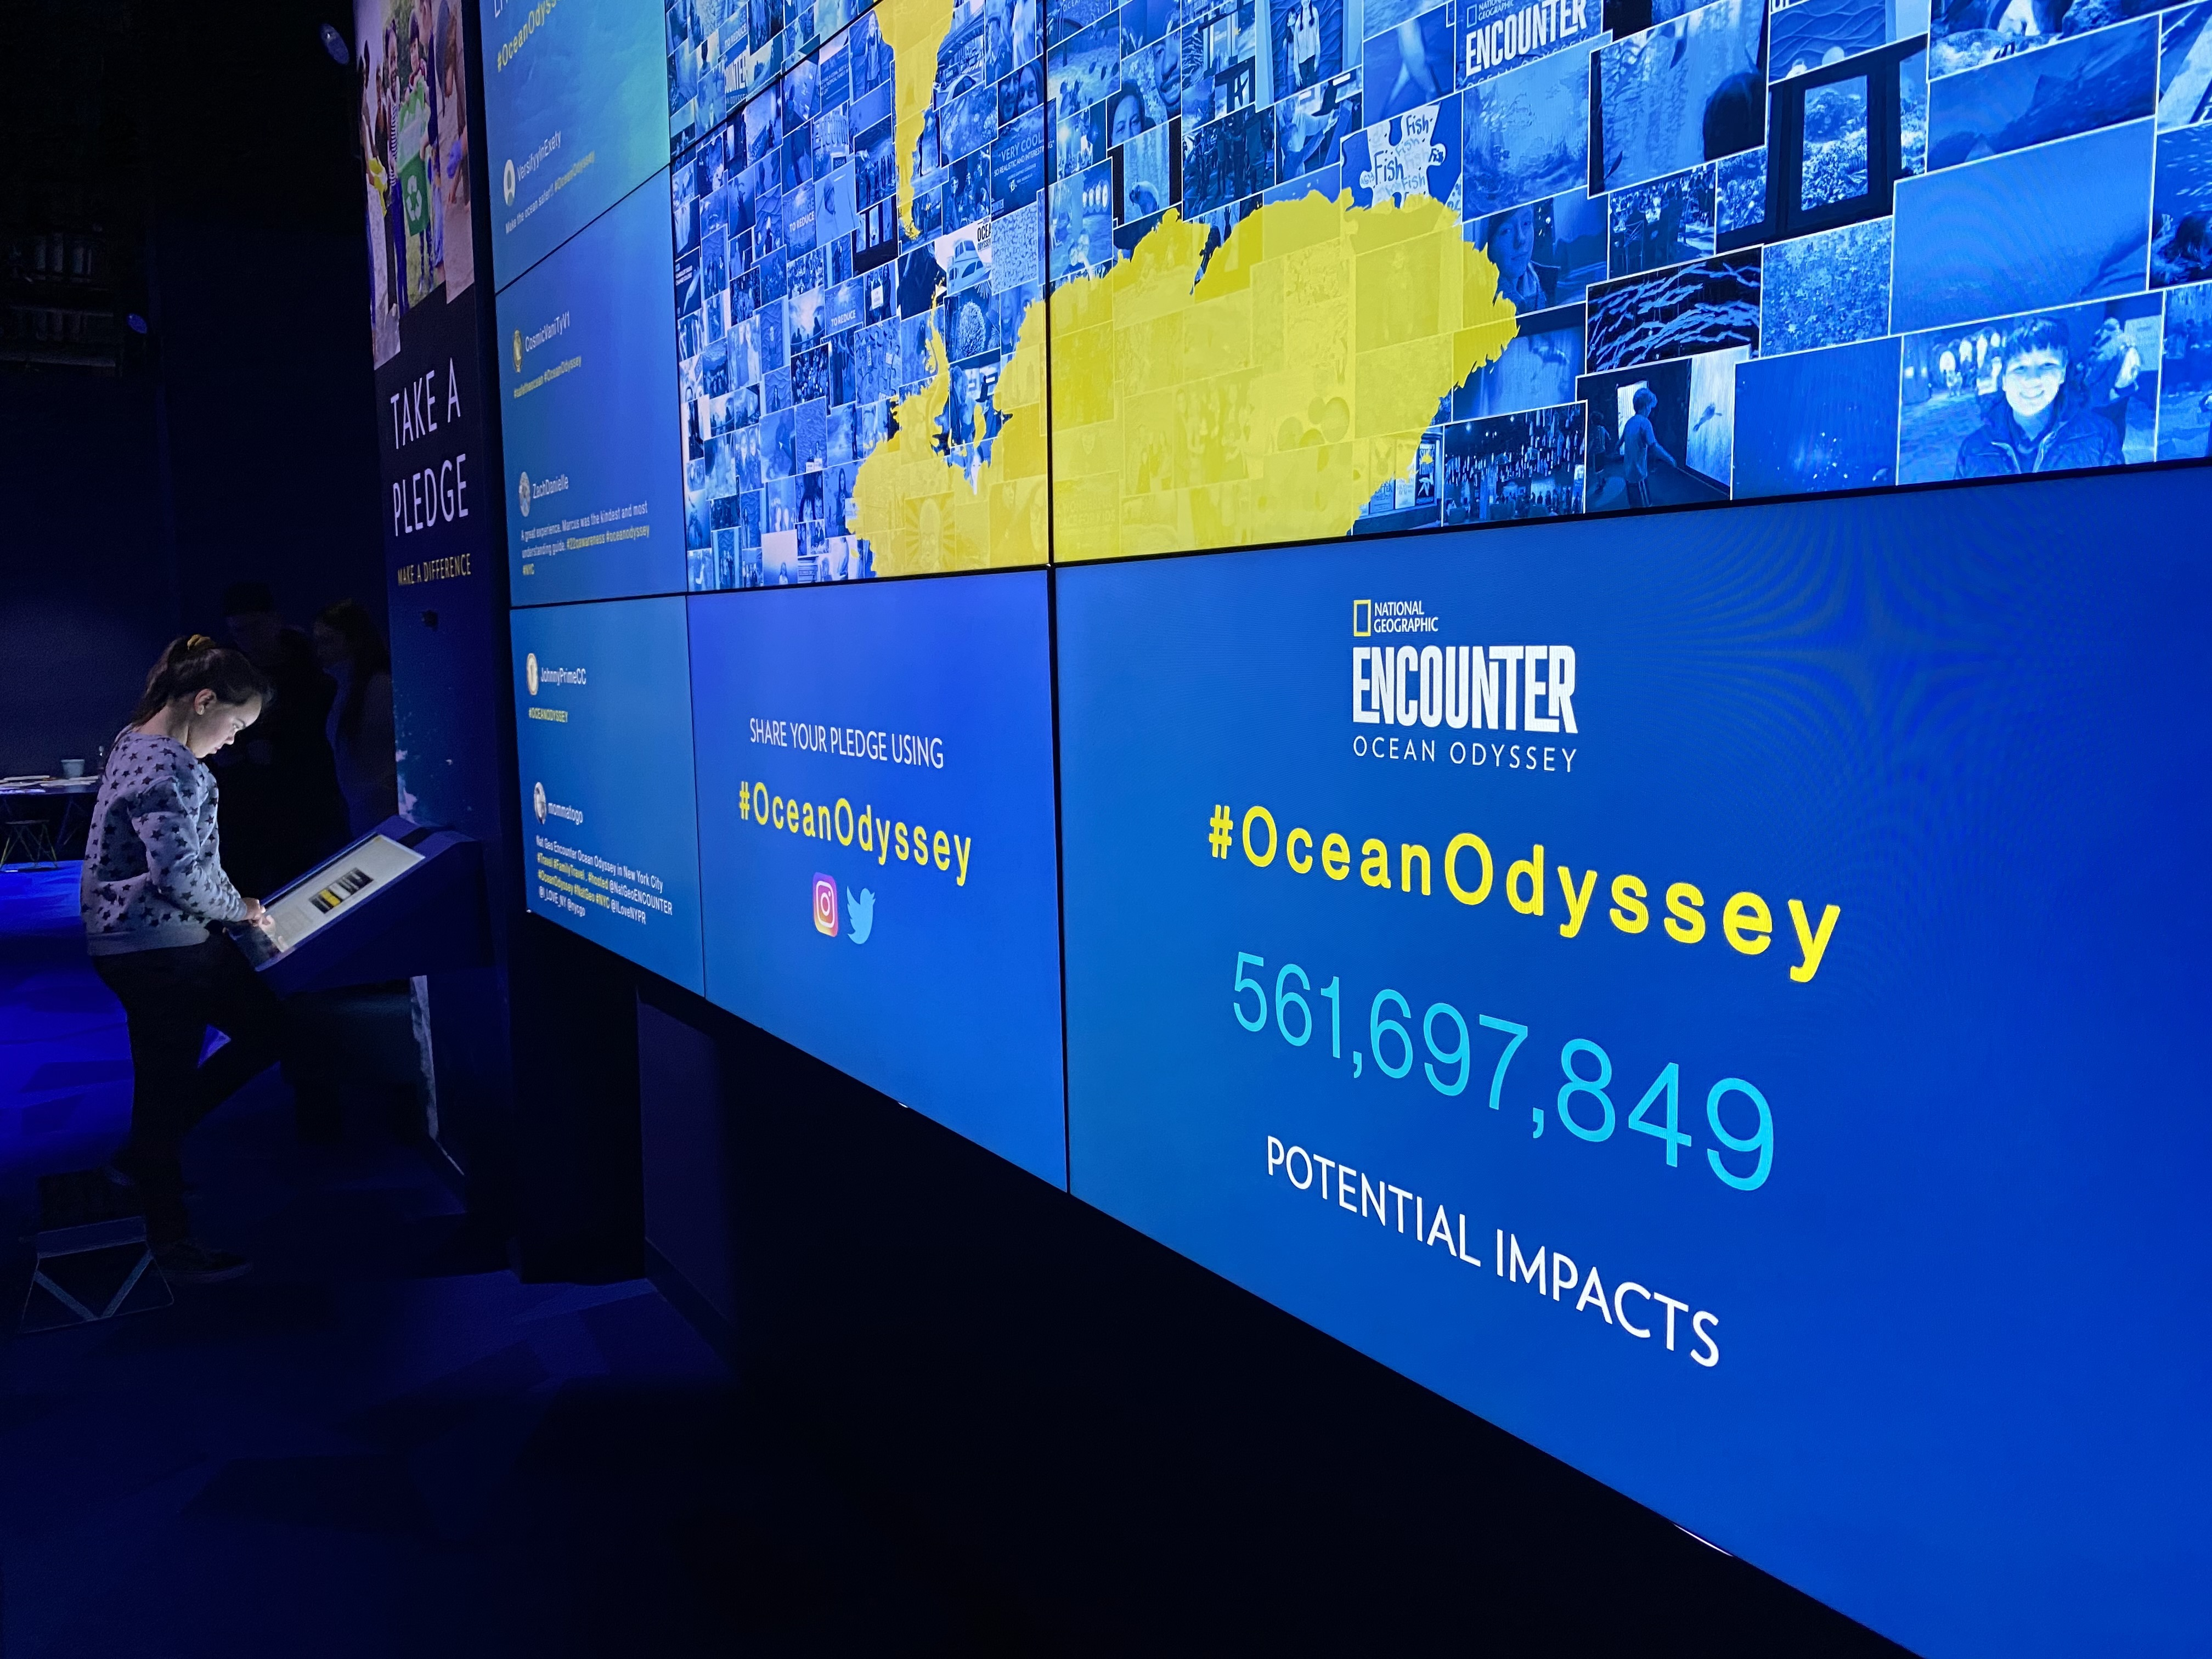 National Geographic Encounter: Ocean Odyssey NYC